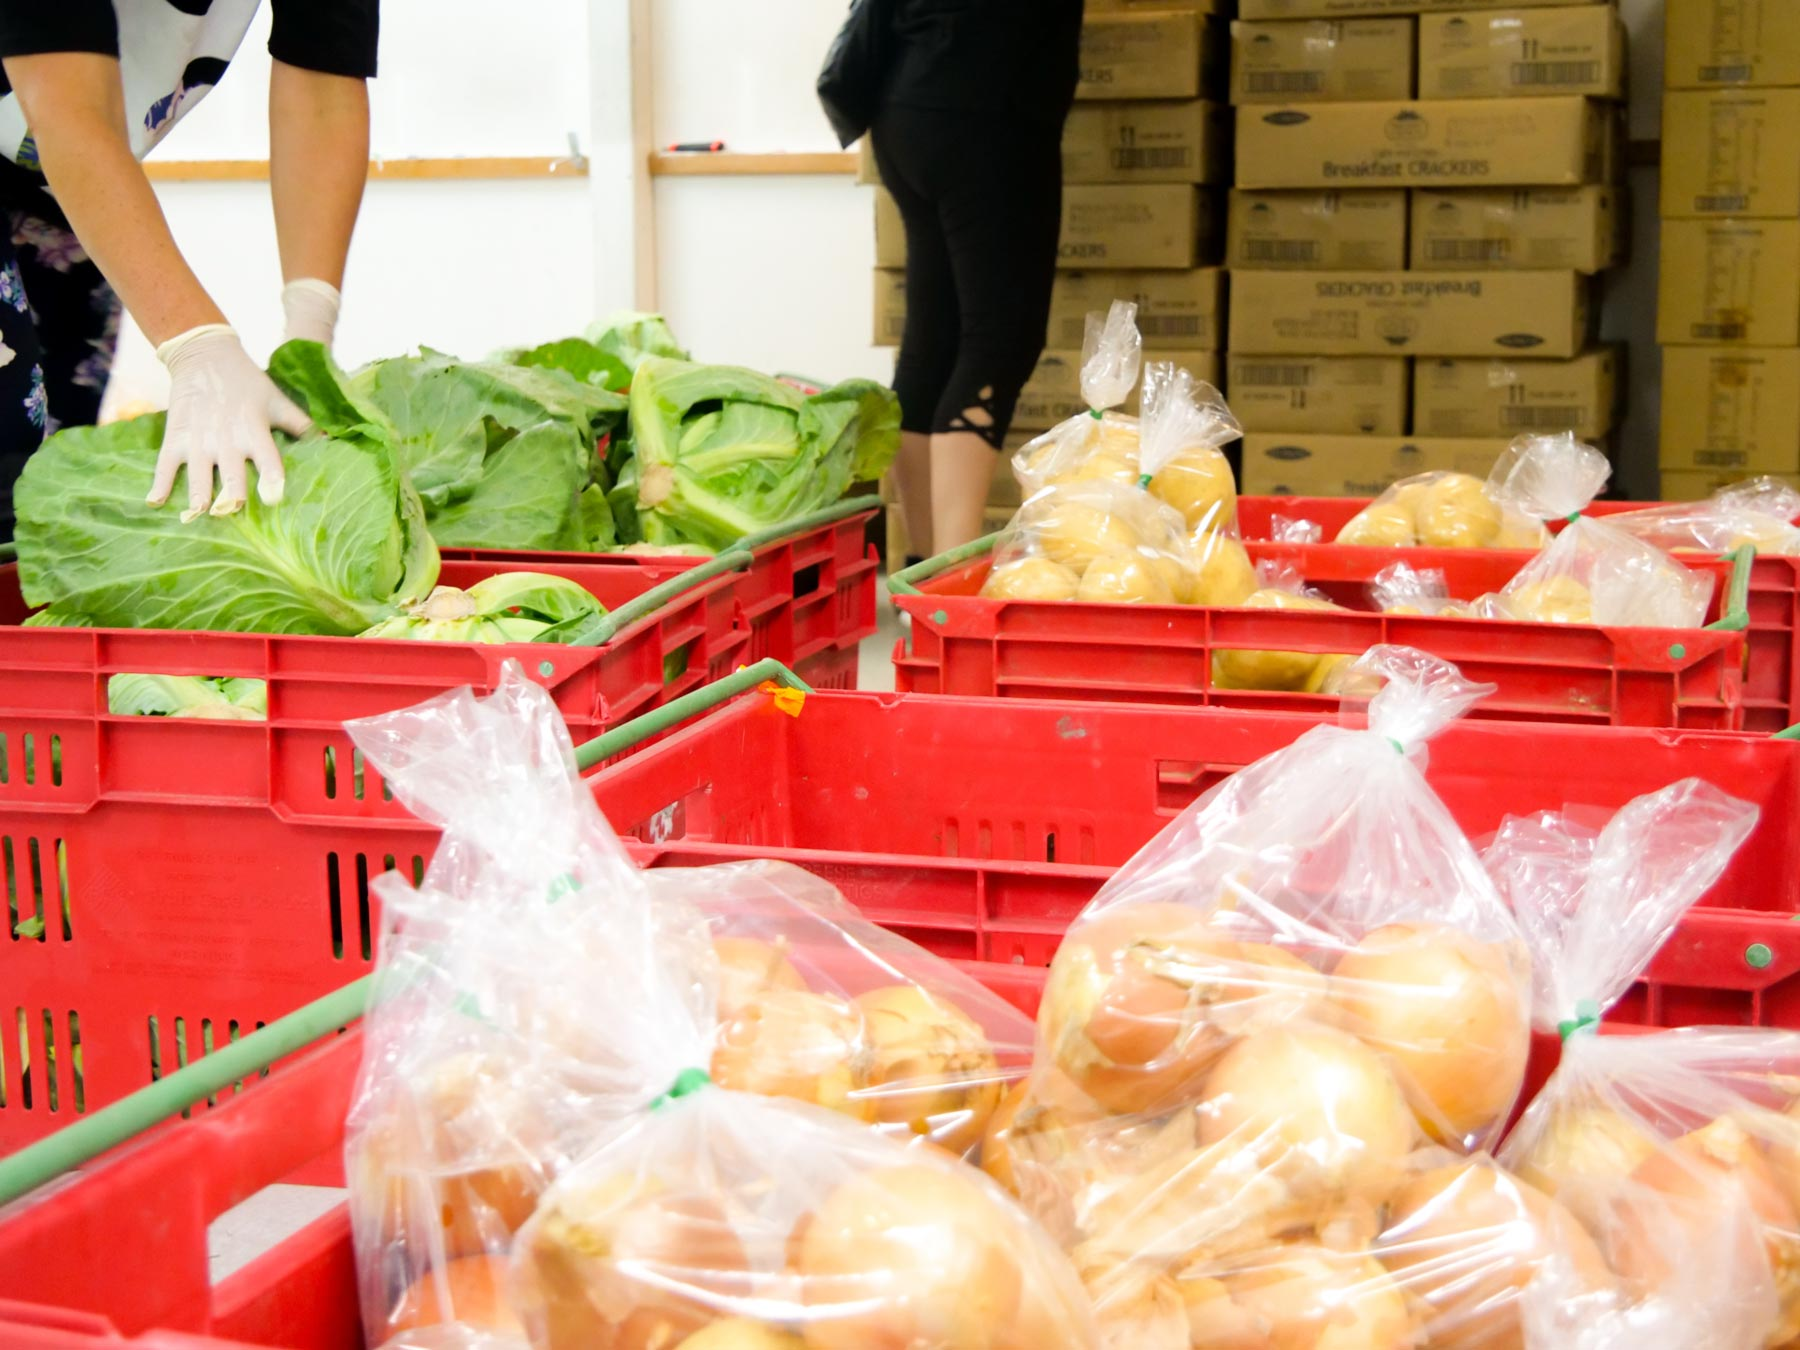 Healthy food being packed in a warehouse